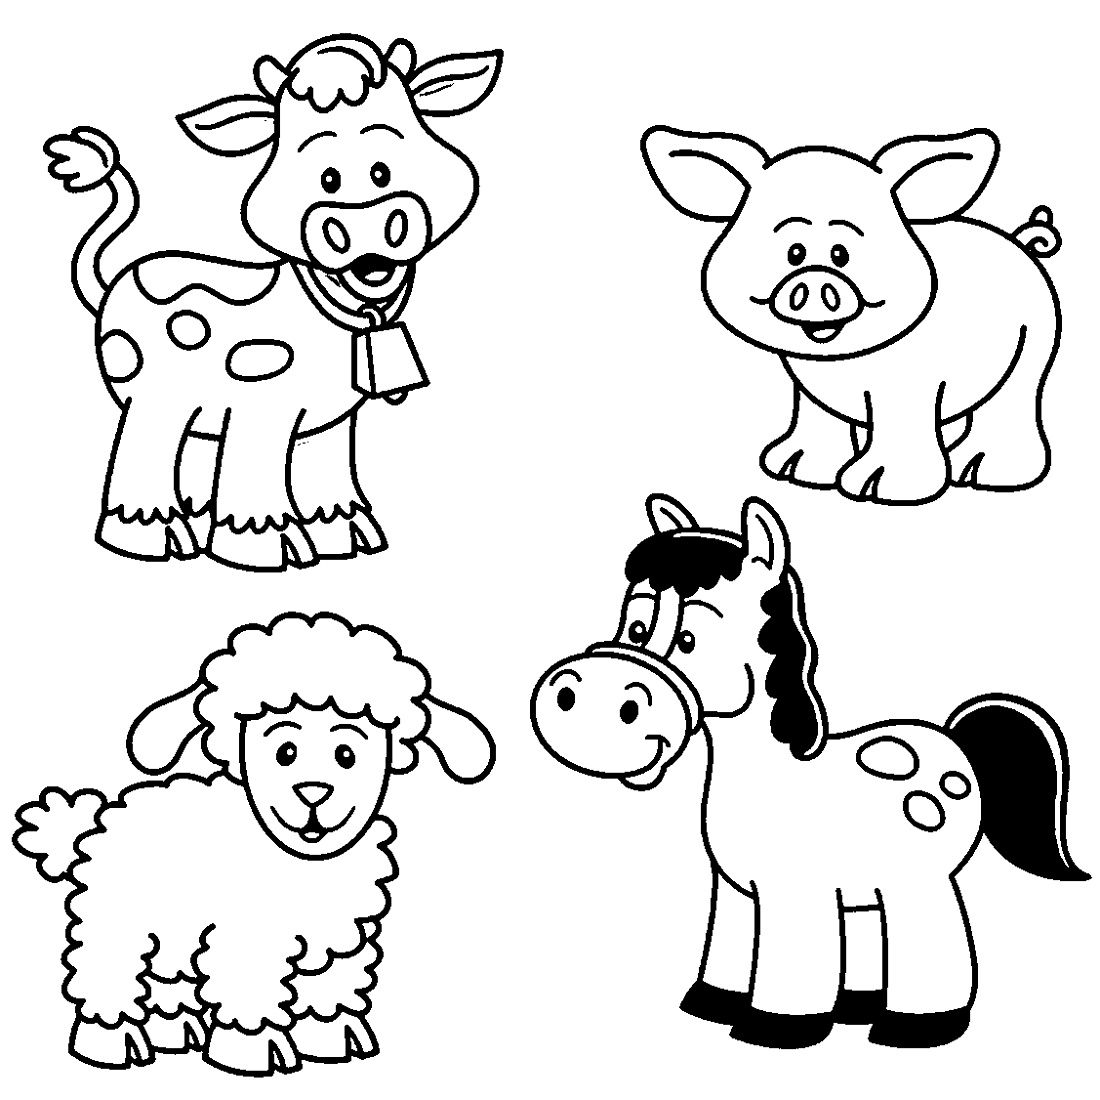 Printable Farm Animal Coloring For Kindergarten K5 Worksheets Farm Animal Coloring Pages Baby Farm Animals Animal Coloring Pages